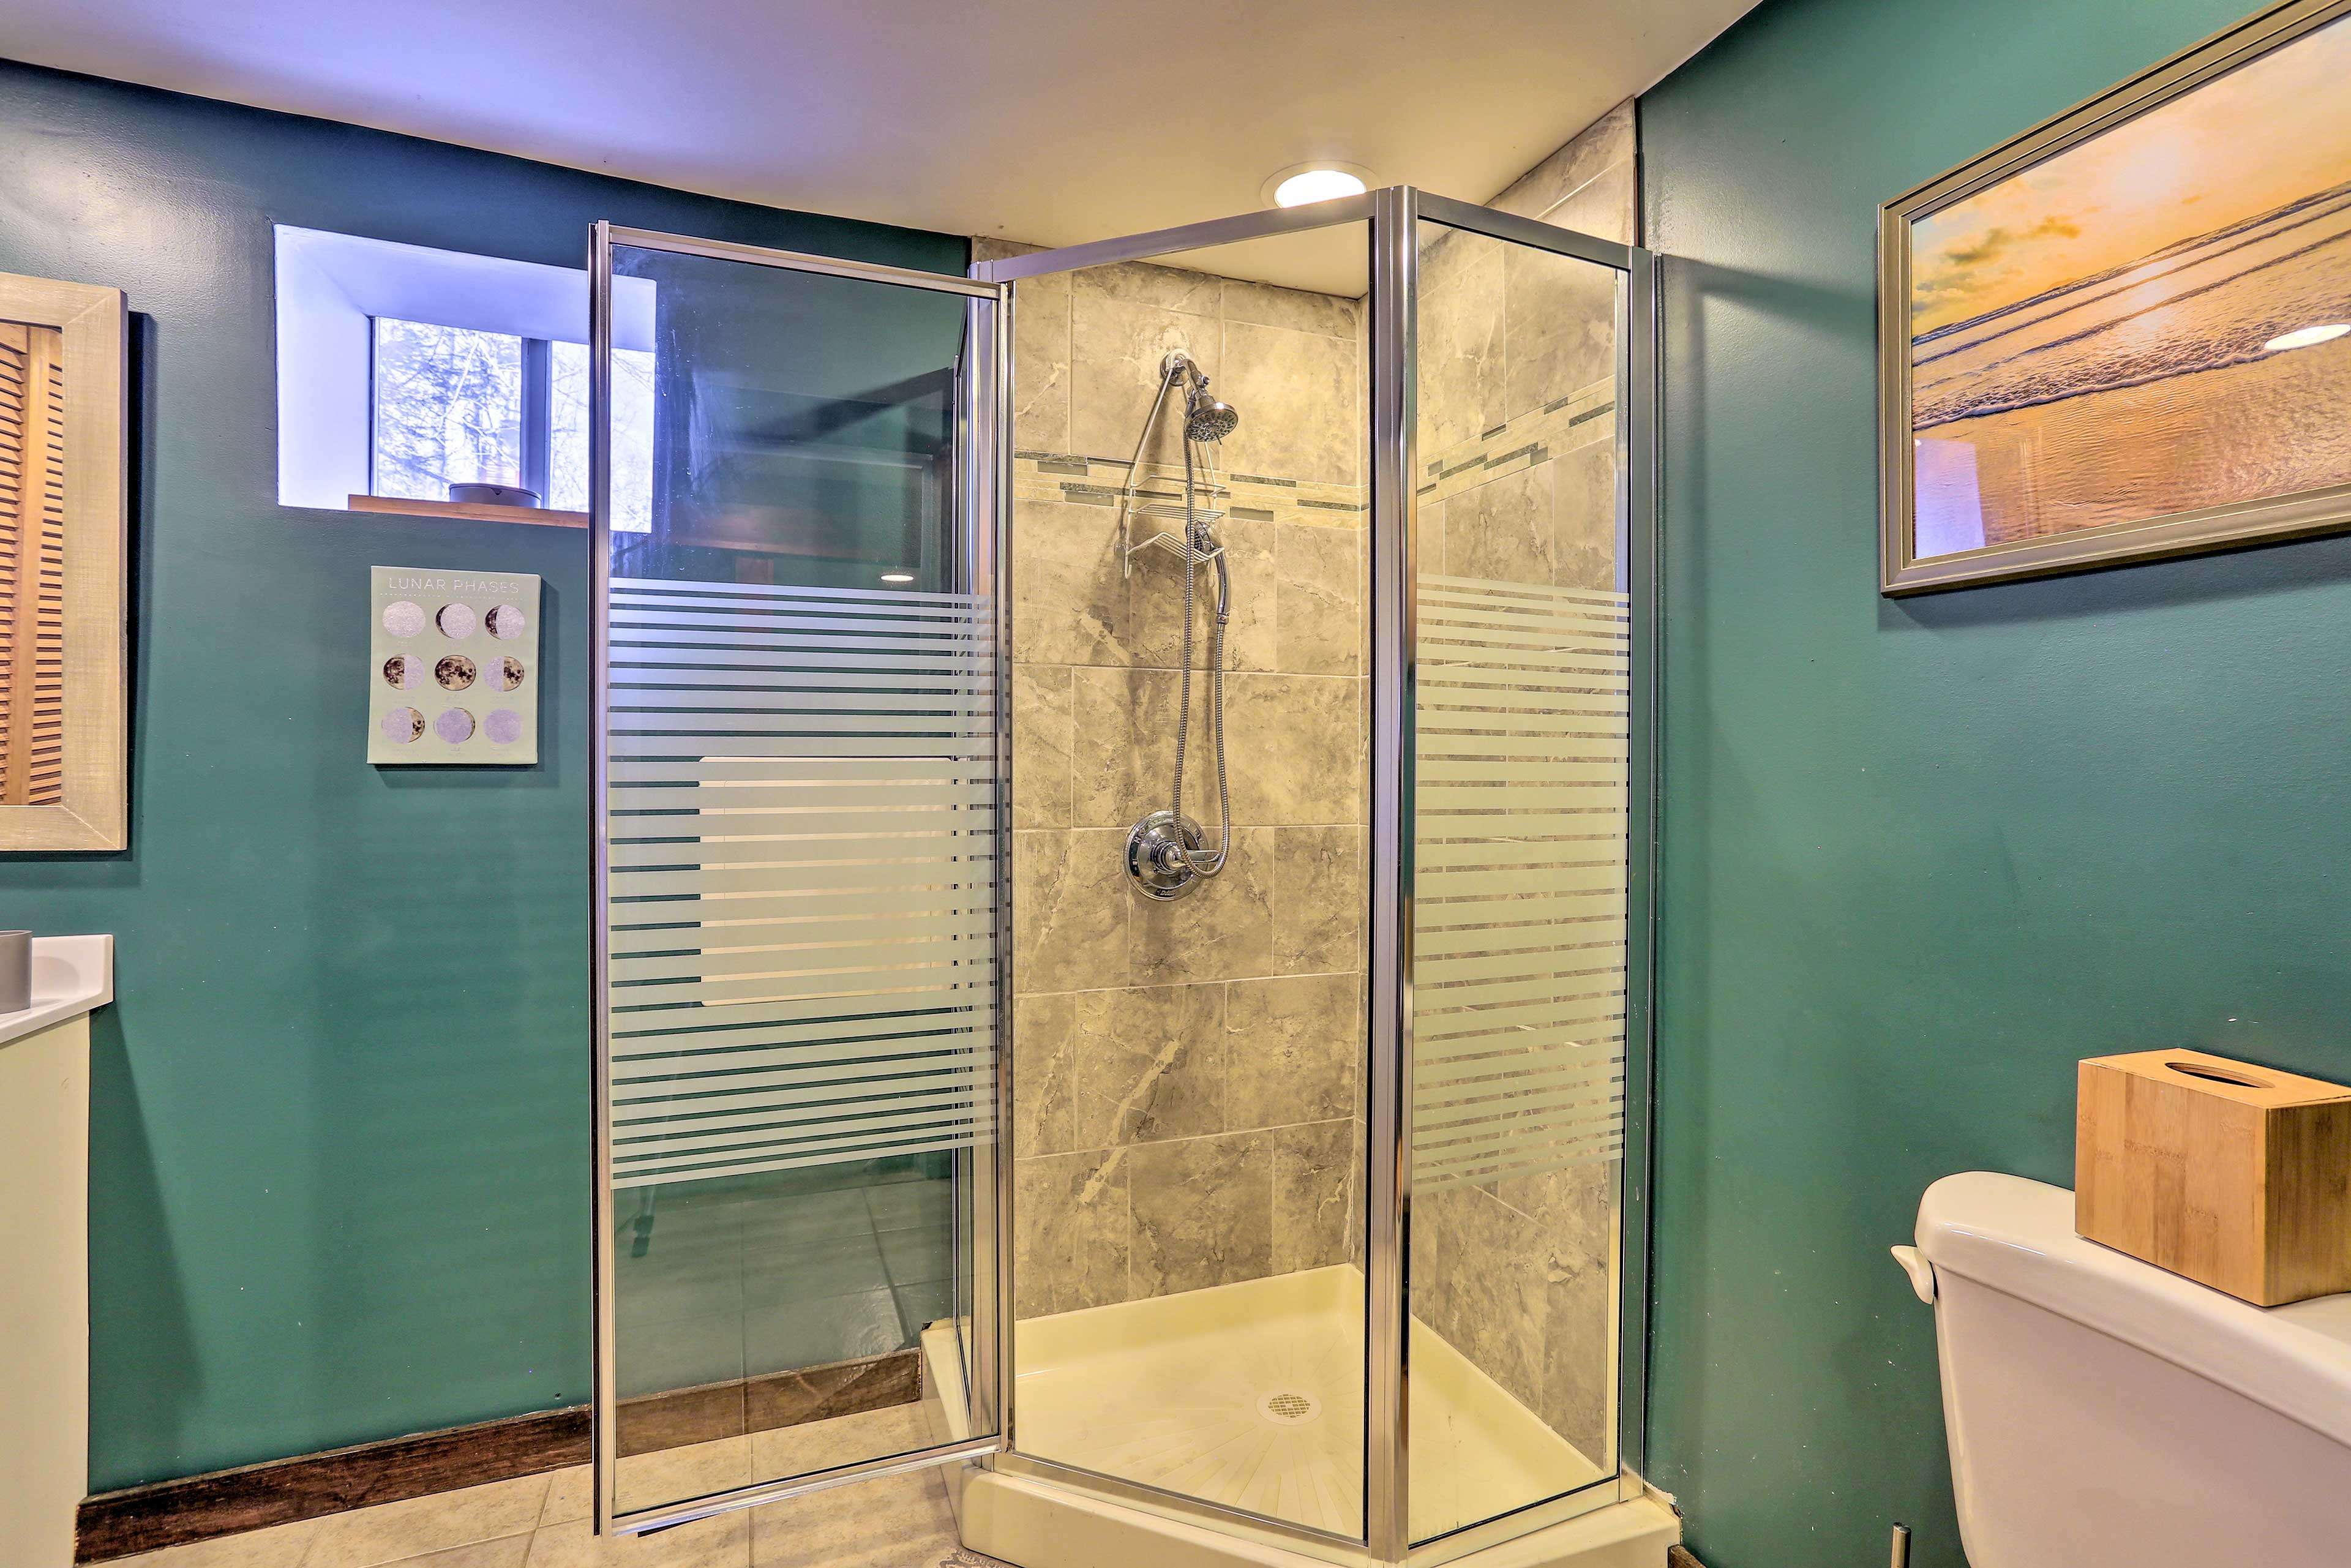 Rinse off the lake in the walk-in shower.